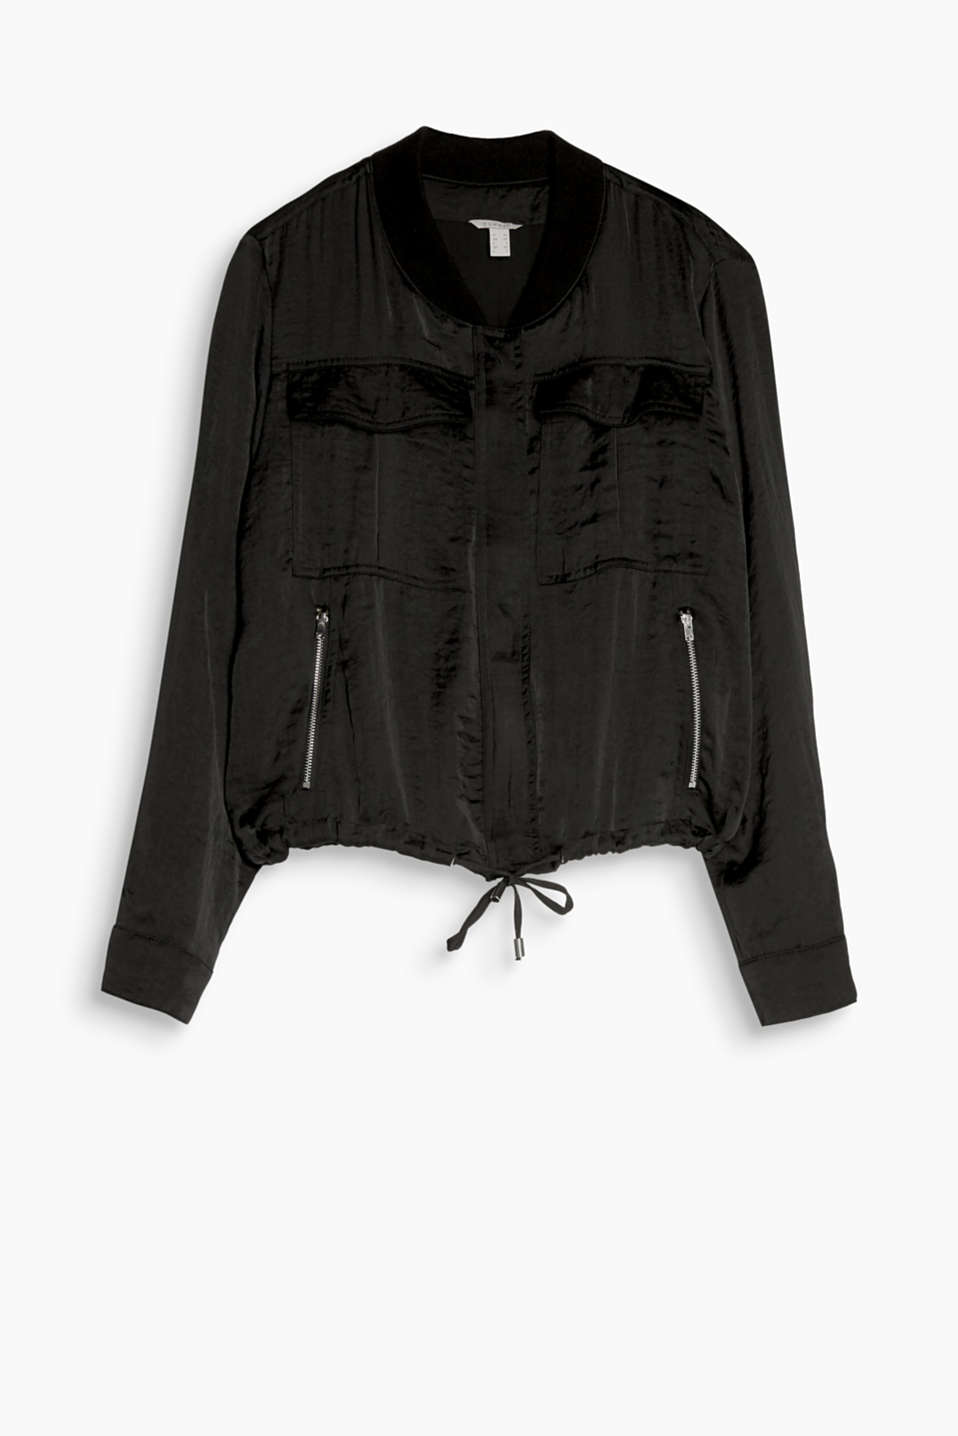 Trendy indoor style: silky bomber jacket in a cropped cut with a breast pocket and drawstring hem